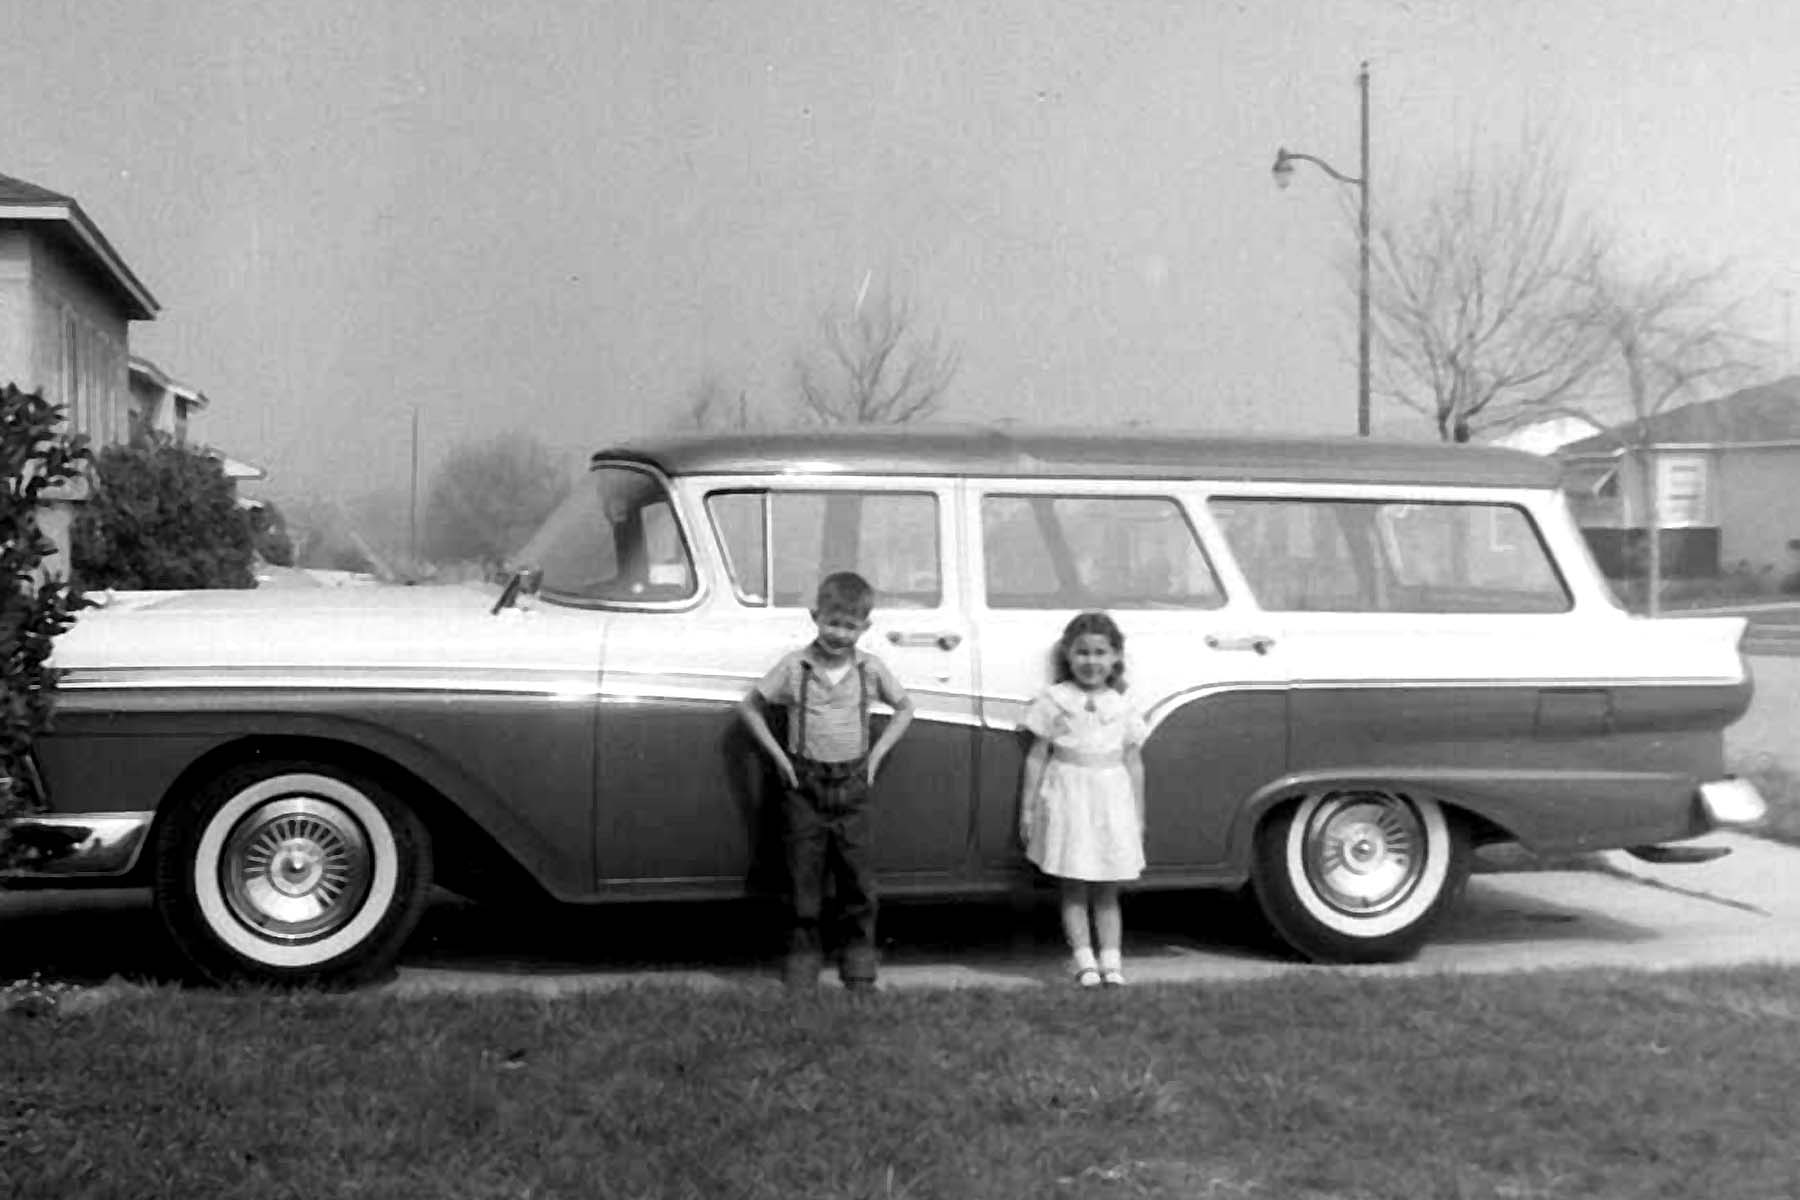 1957 ford country squire station wagon.jpg